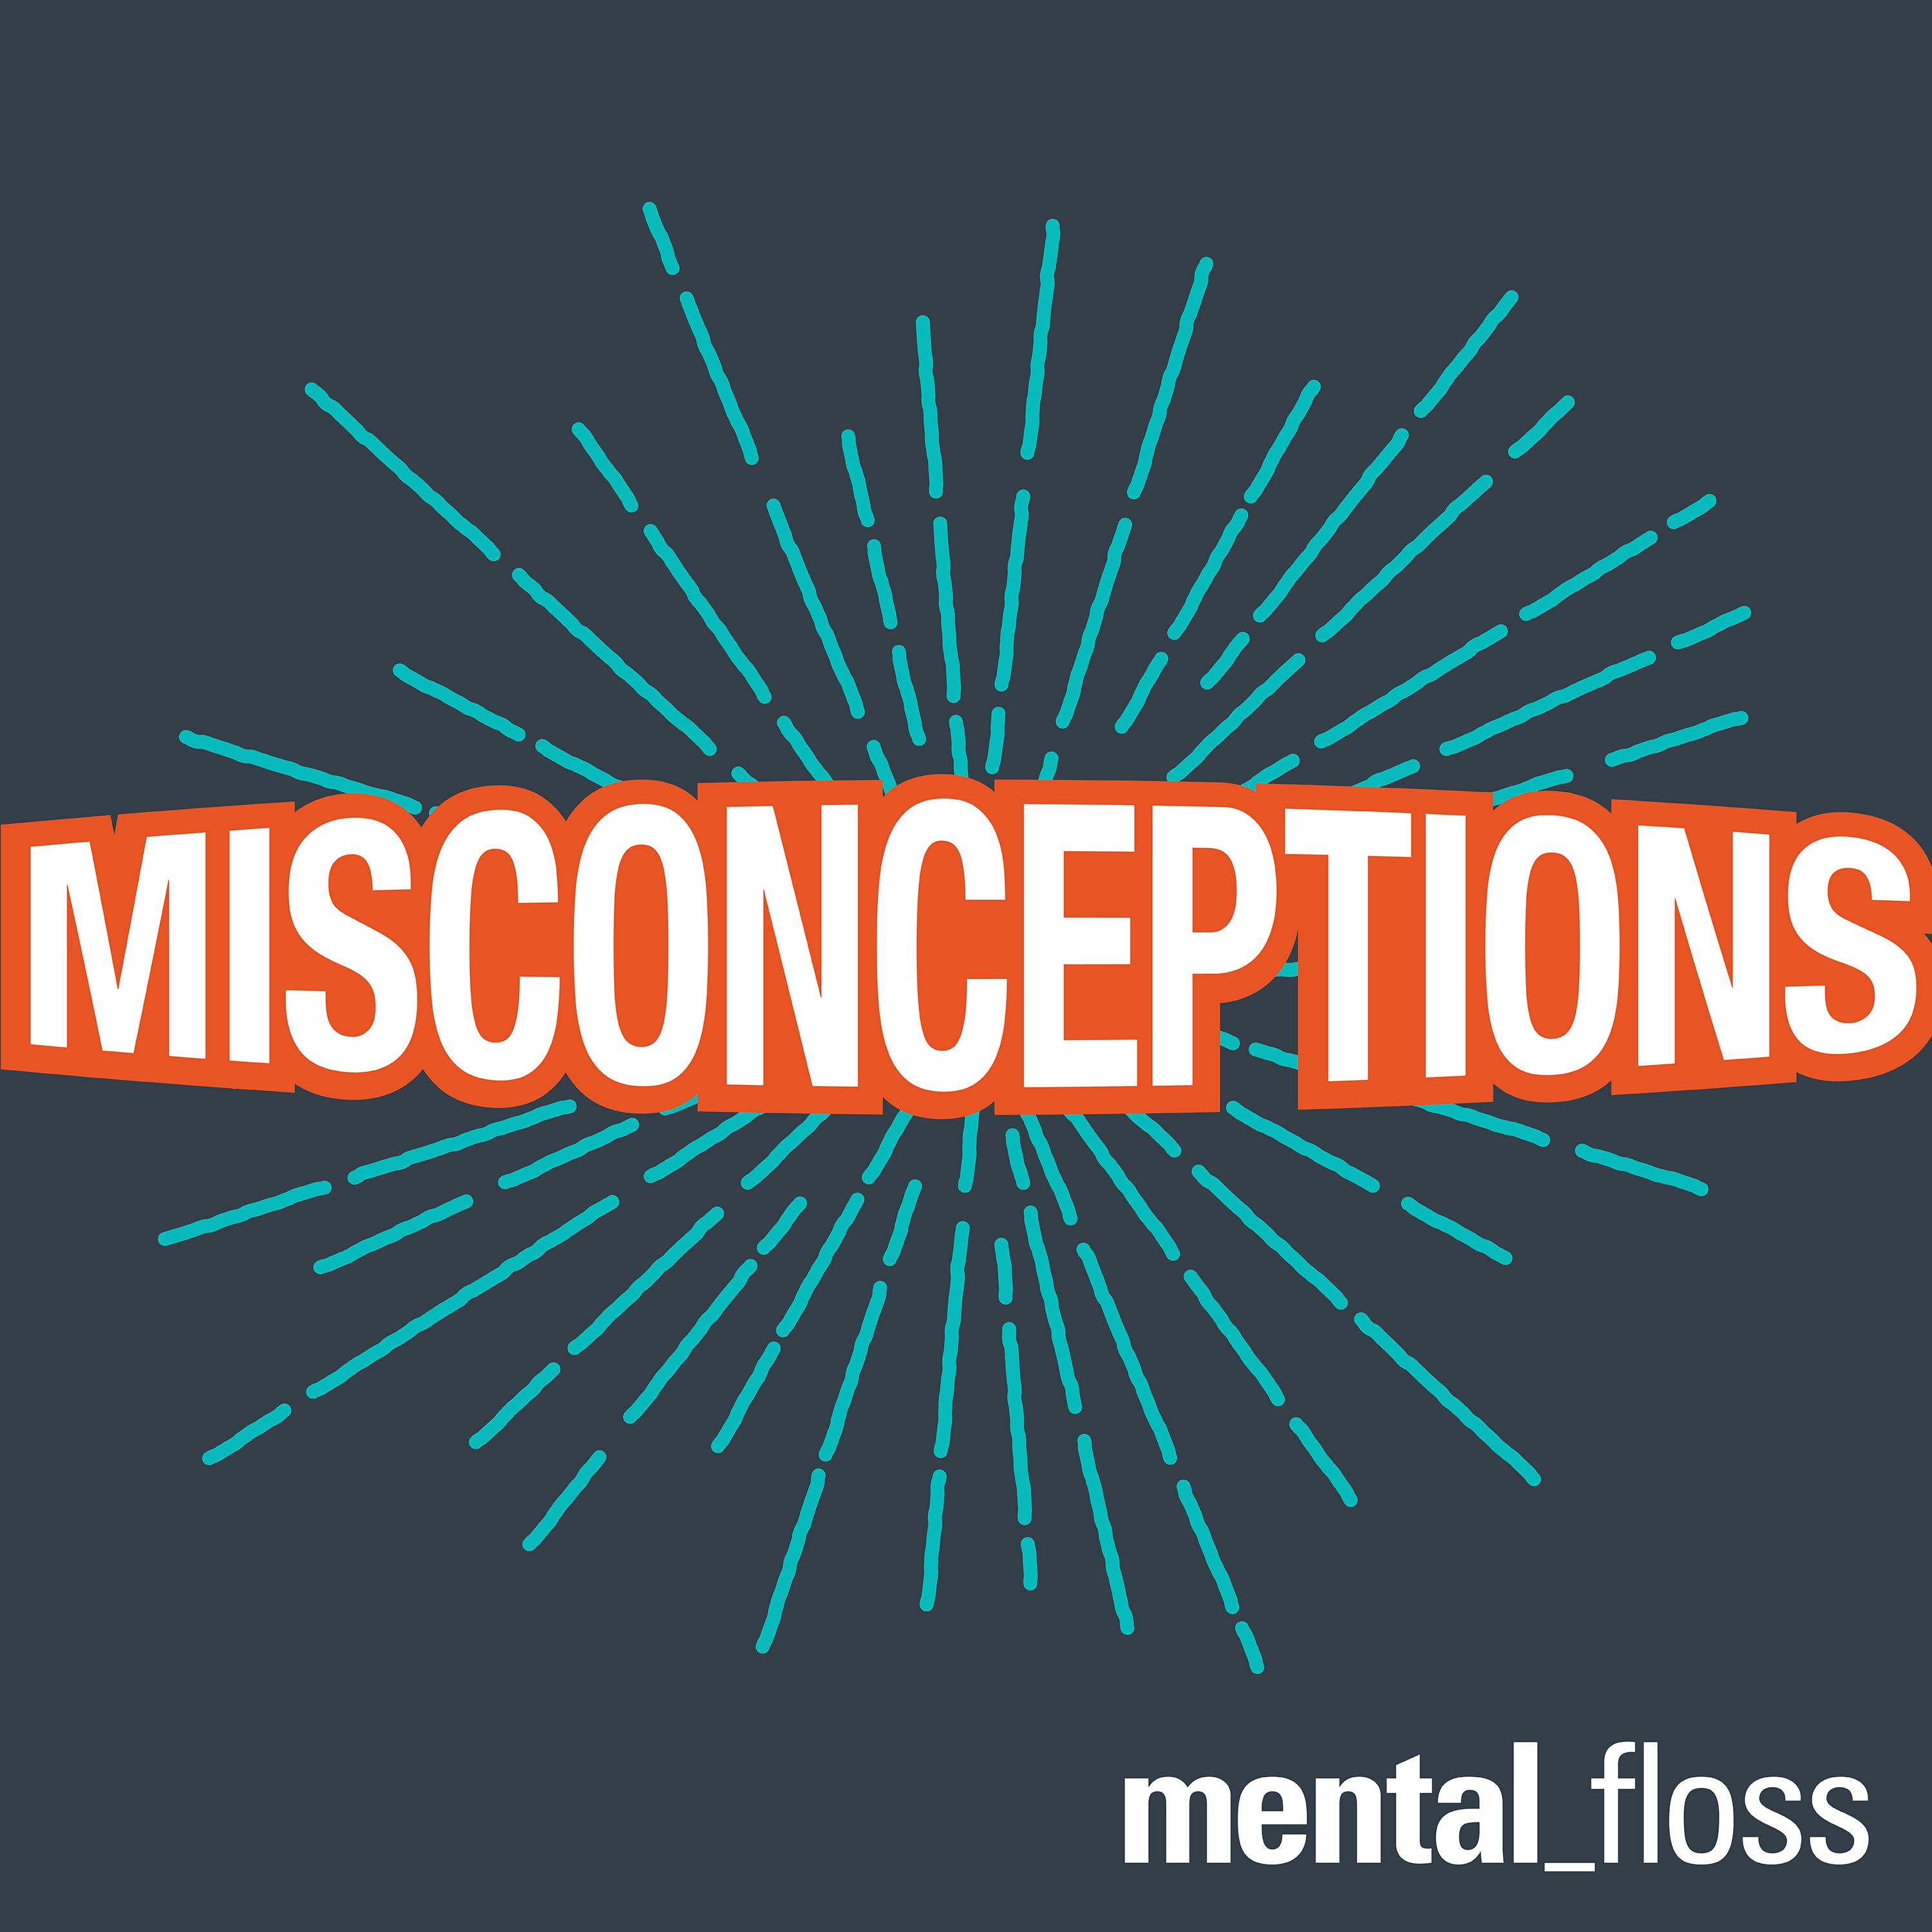 Misconceptions Episode 1: The Internet